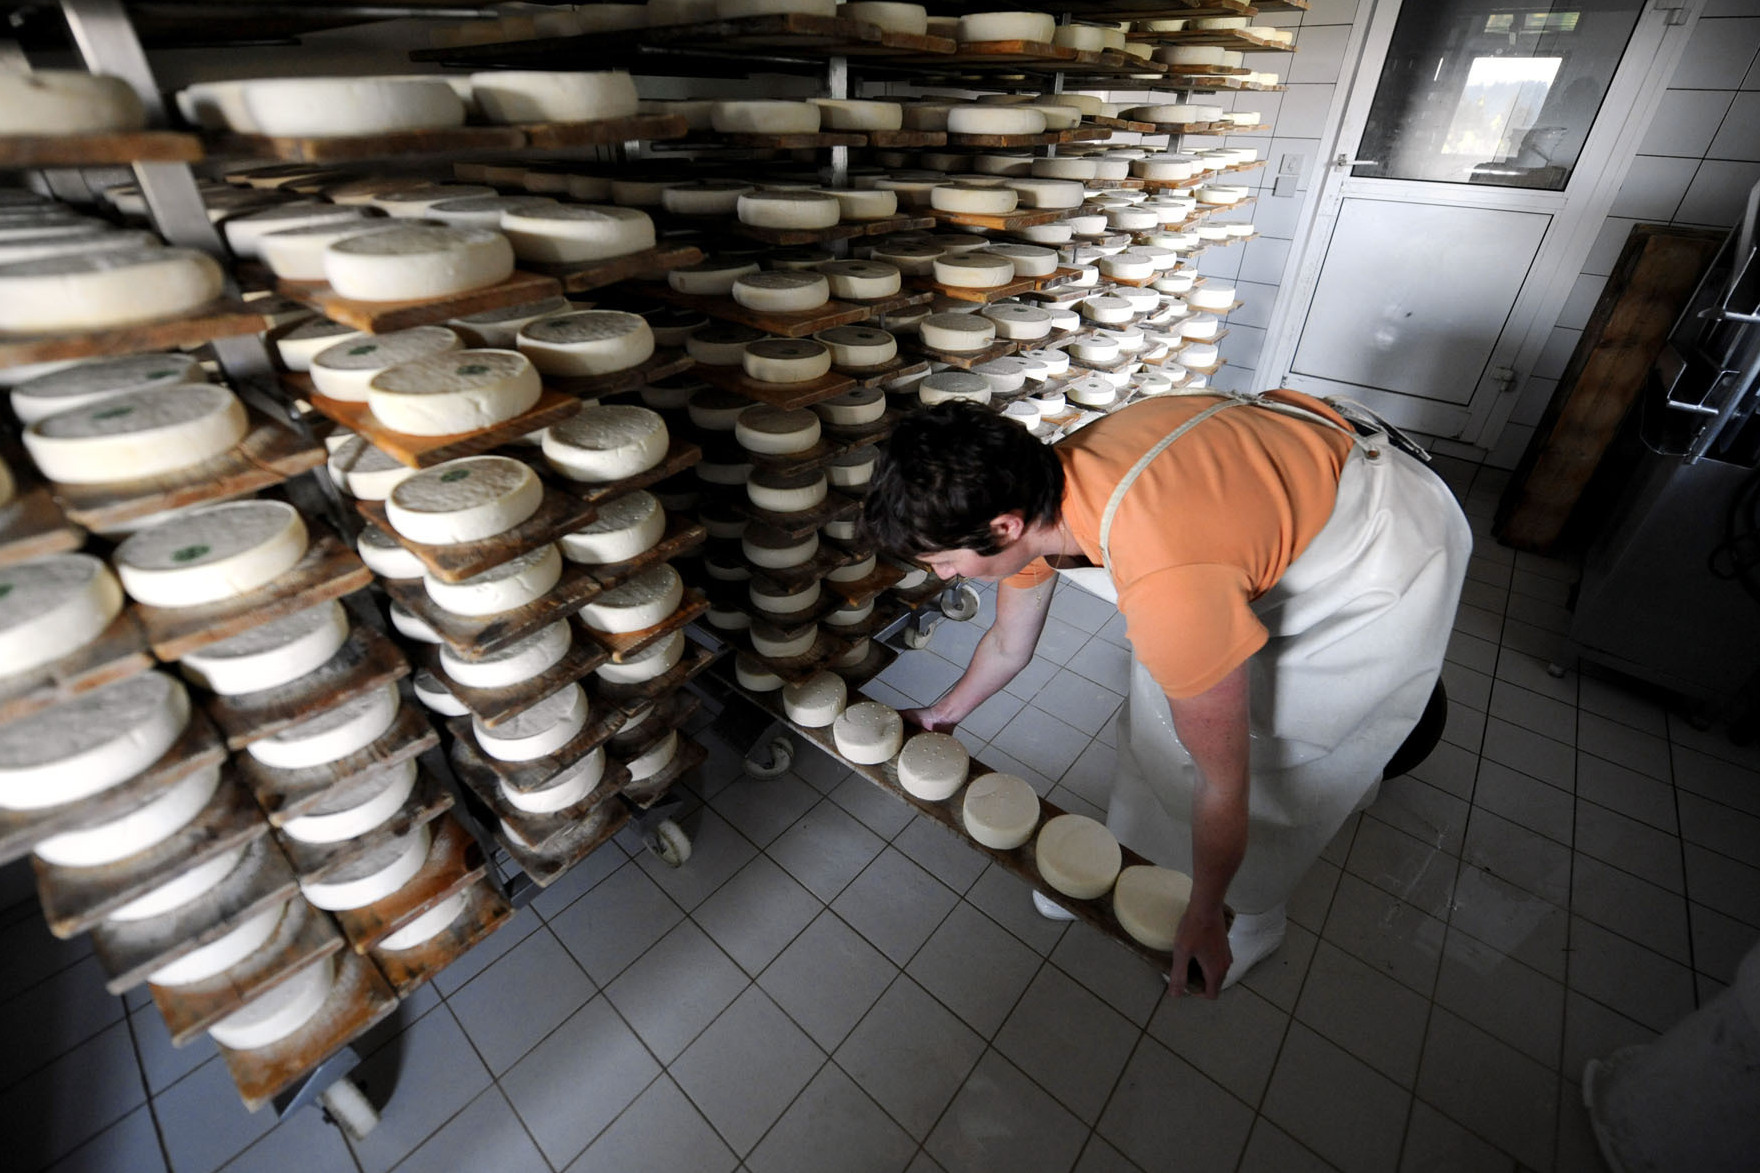 A French cheesemaker sets up wheels of Reblochon, a semi-soft cheese made from raw cow's milk, for maturing in a farm in the French Alps. Anglophone cheesemakers say translating a French government cheese manual will help them make safer raw milk cheese. Photo: Jean-Pierre Clatot/AFP/Getty Images